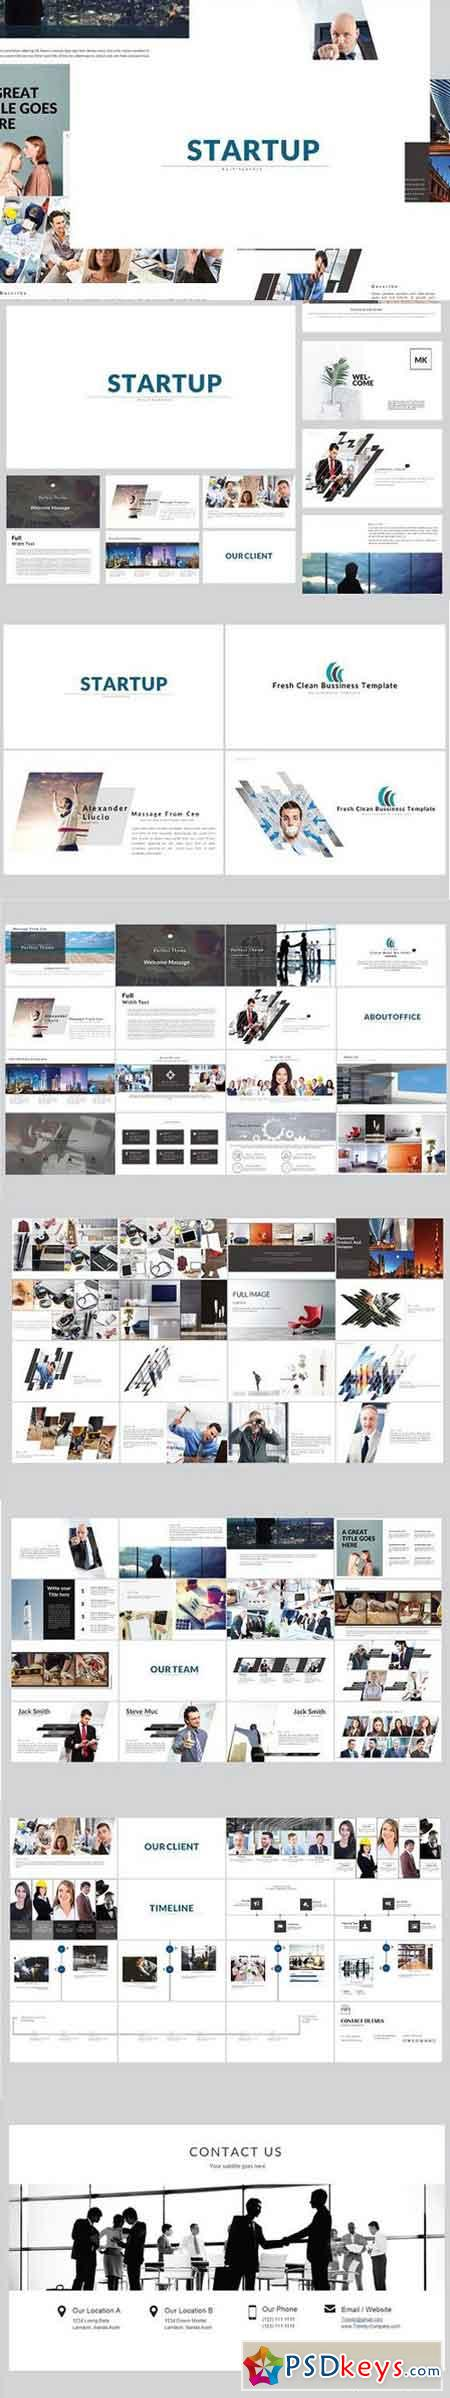 Startup Business Powerpoint Template 1558819